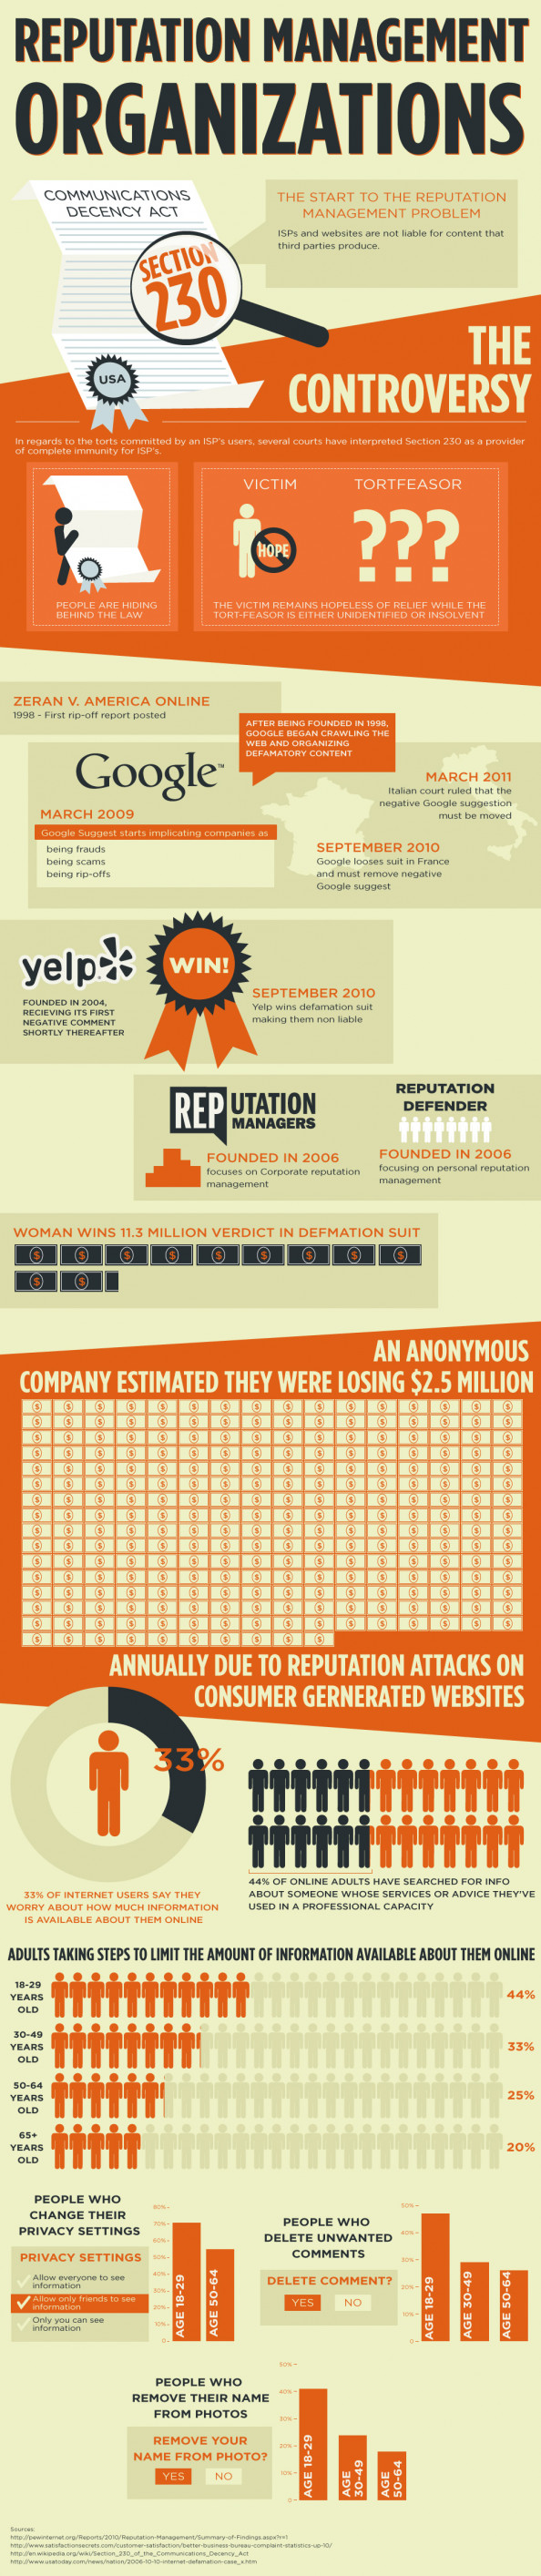 Reputation Management Organizations Infographic